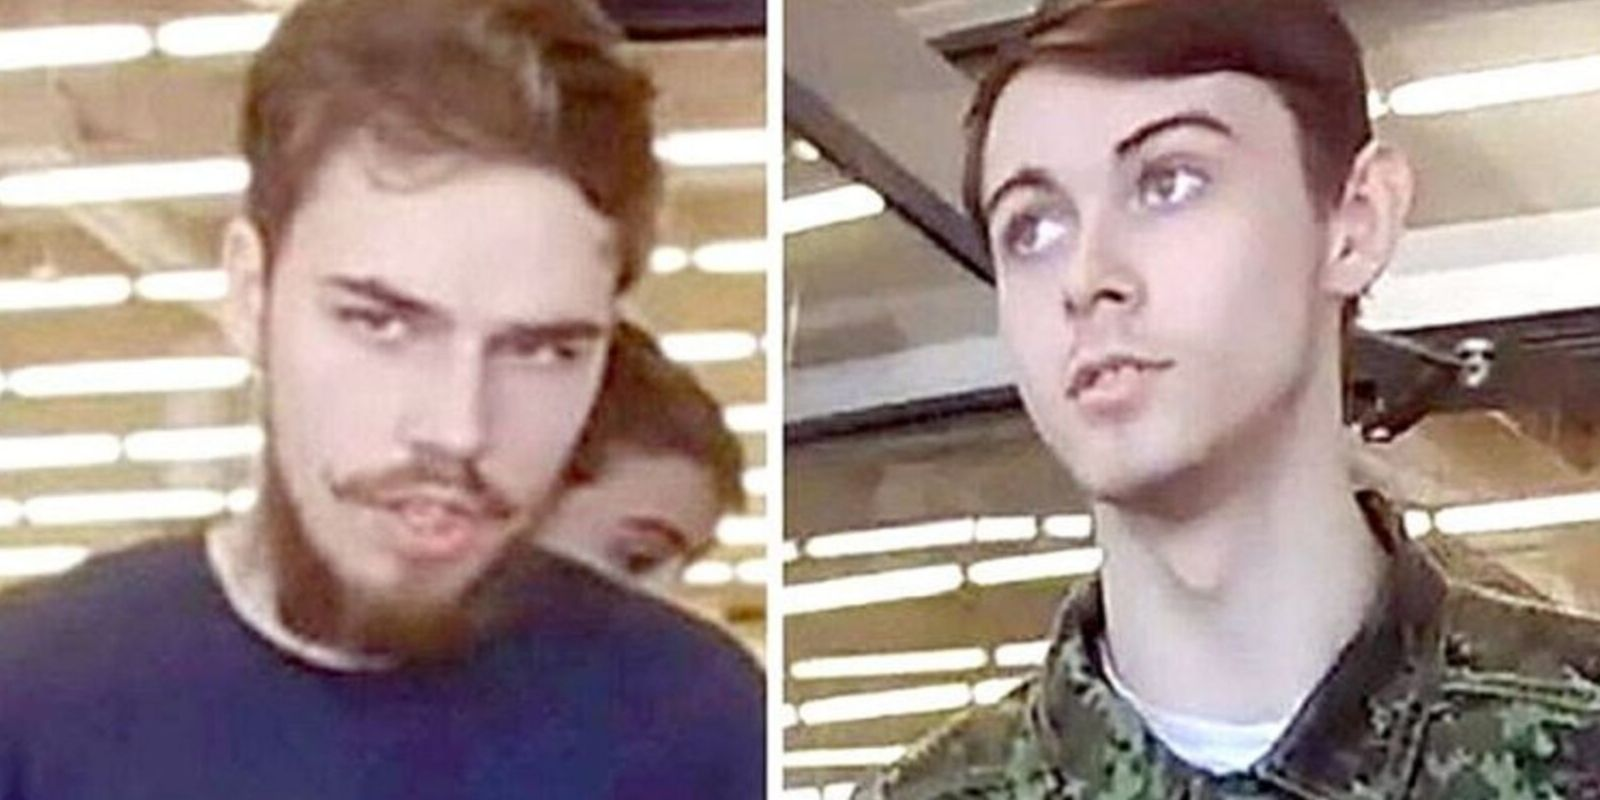 B.C. manhunt suspects planned to continue killing spree and flee to Europe or Africa by boat: RCMP